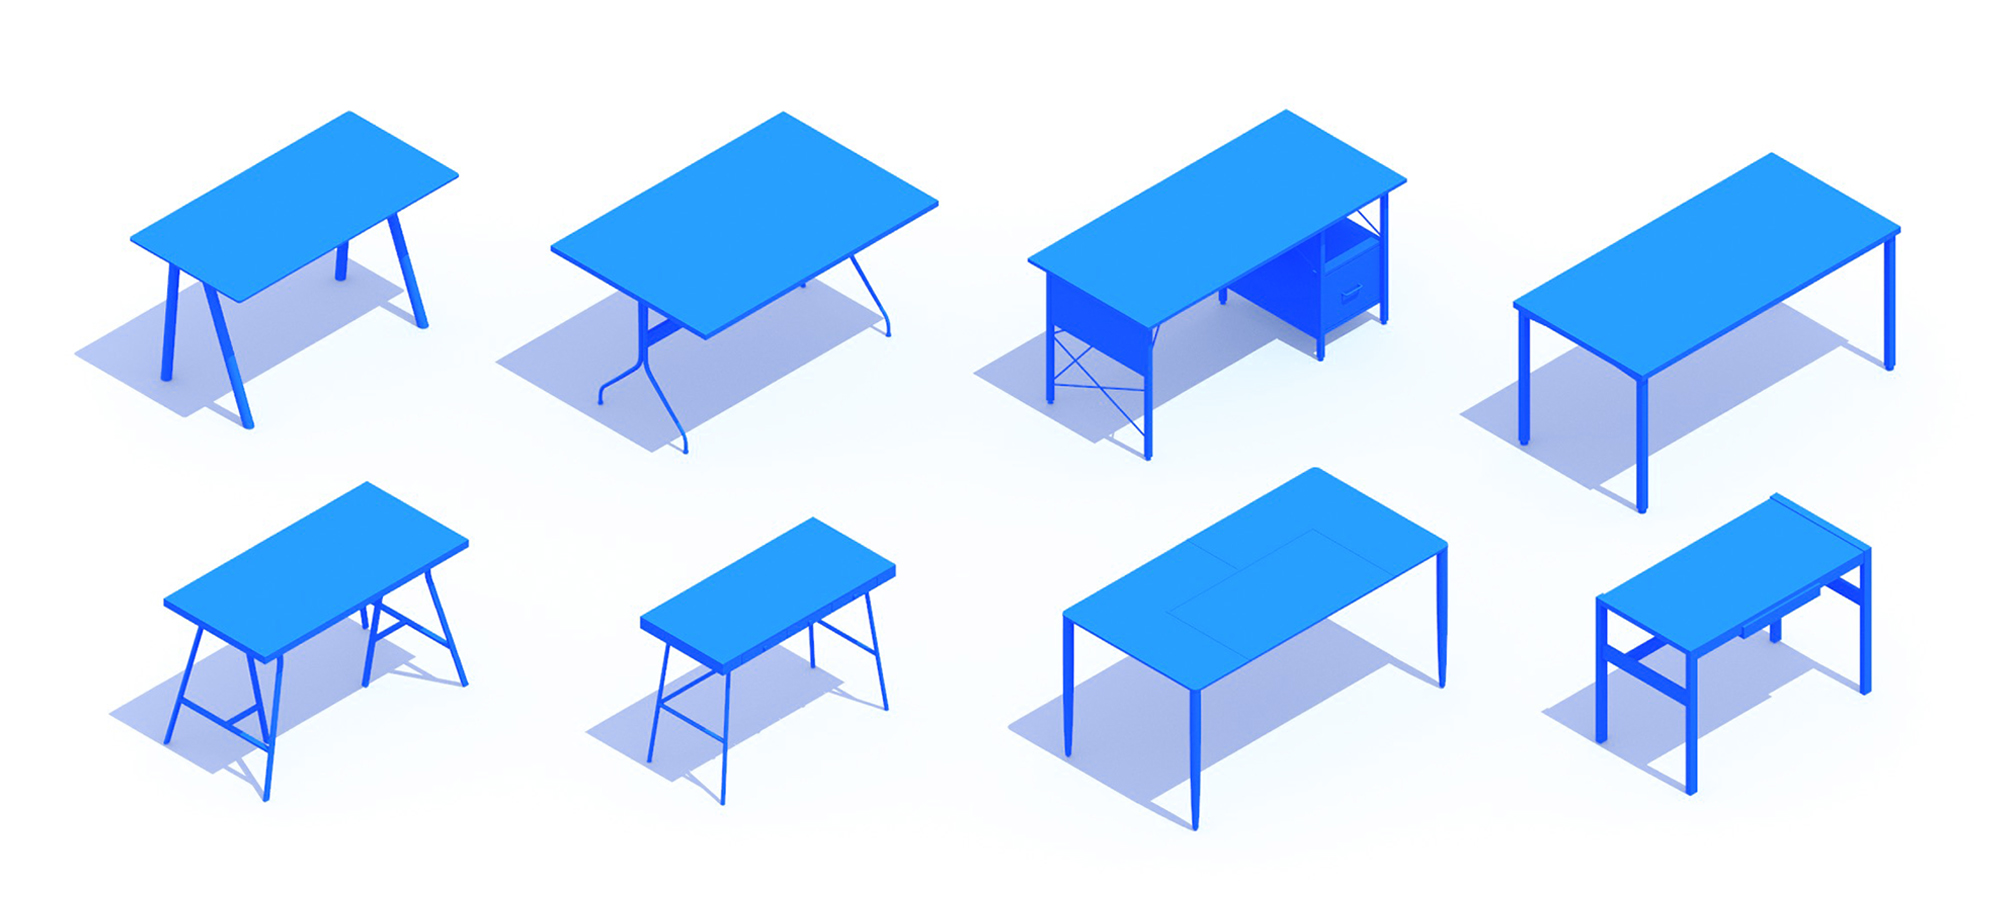 Collection of 3D Desks and Work Tables showing a diversity of sizes, styles, and types